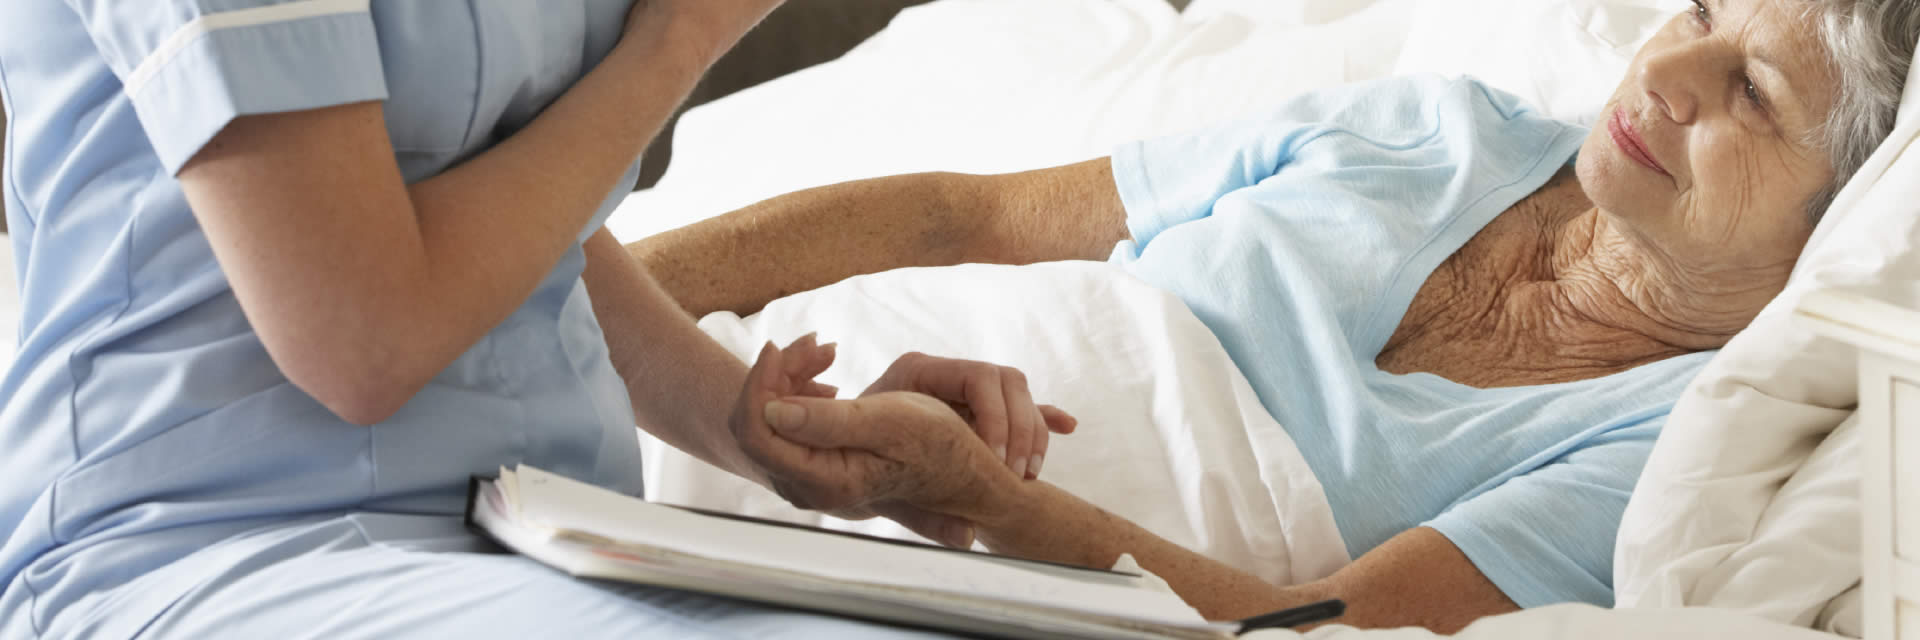 Home care in Tenerife 24 hour call out